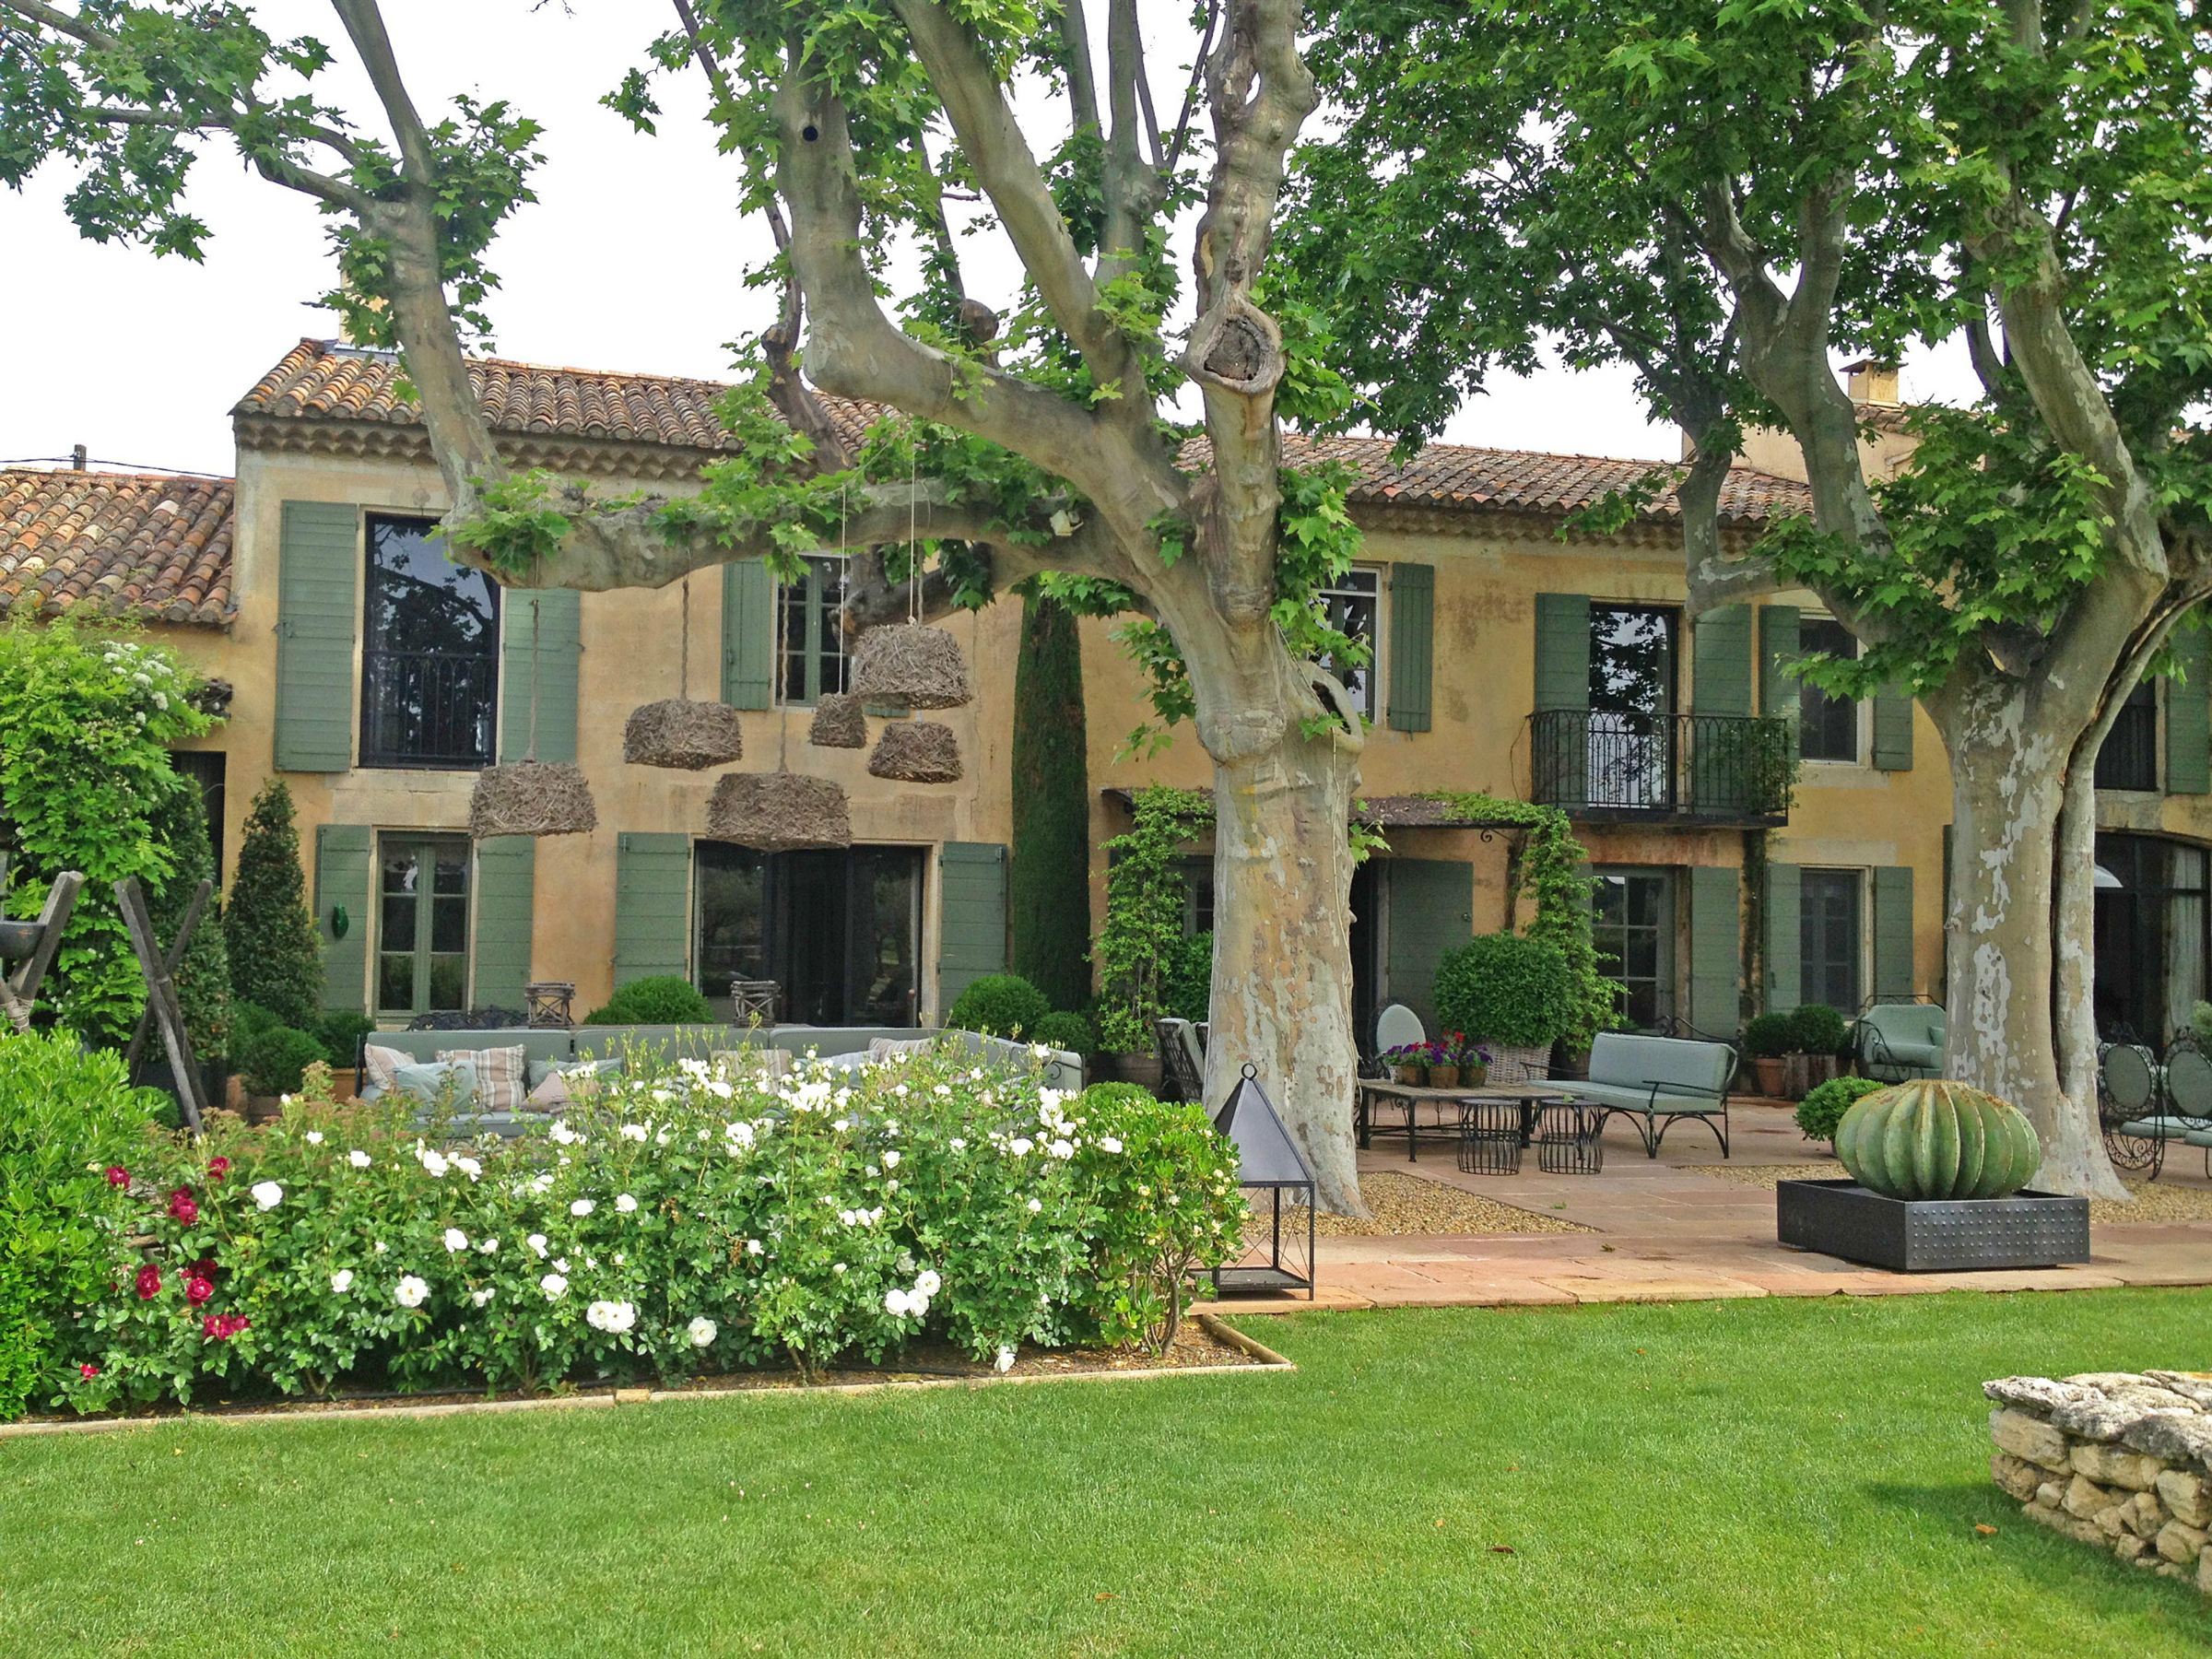 Property For Sale at luxurious typical provencal farmhouse close to st remy de provence